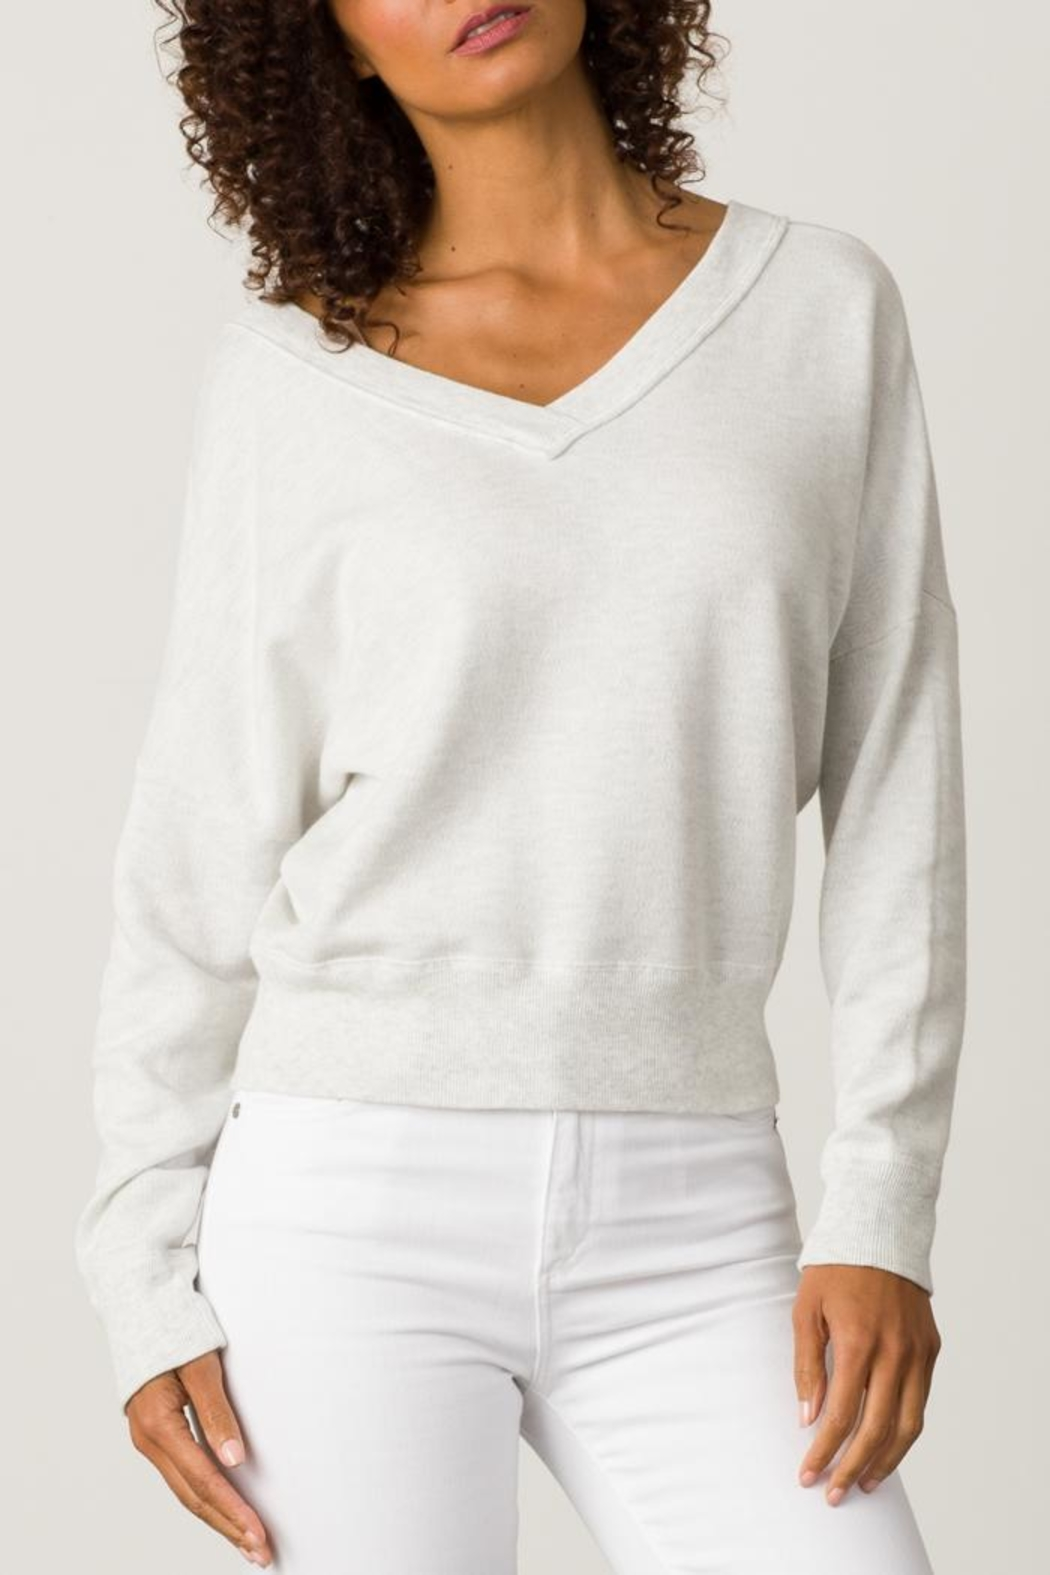 Margaret O'Leary Double V-Neck Sweatshirt - Main Image